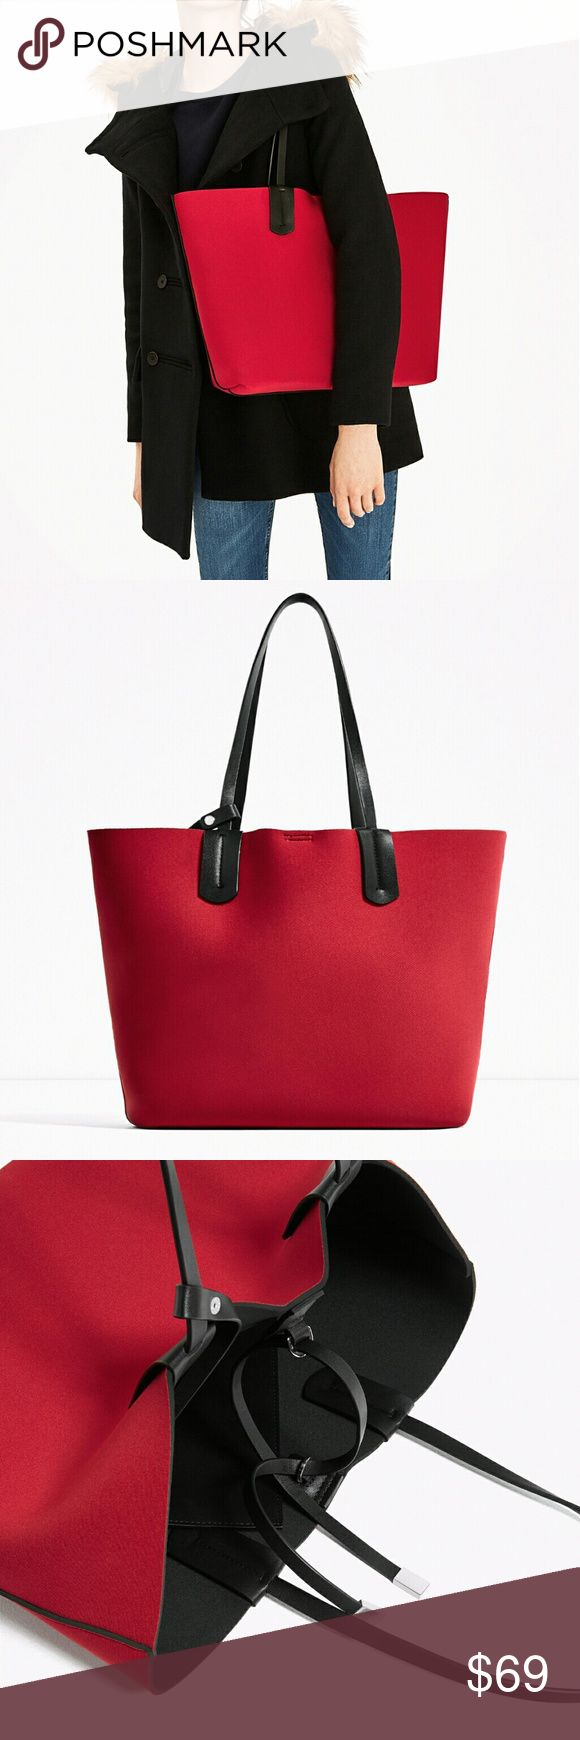 ZARA TOTE BAG BRAND NEW ZARA TOTE BAG BRAND NEW Zara Bags Totes